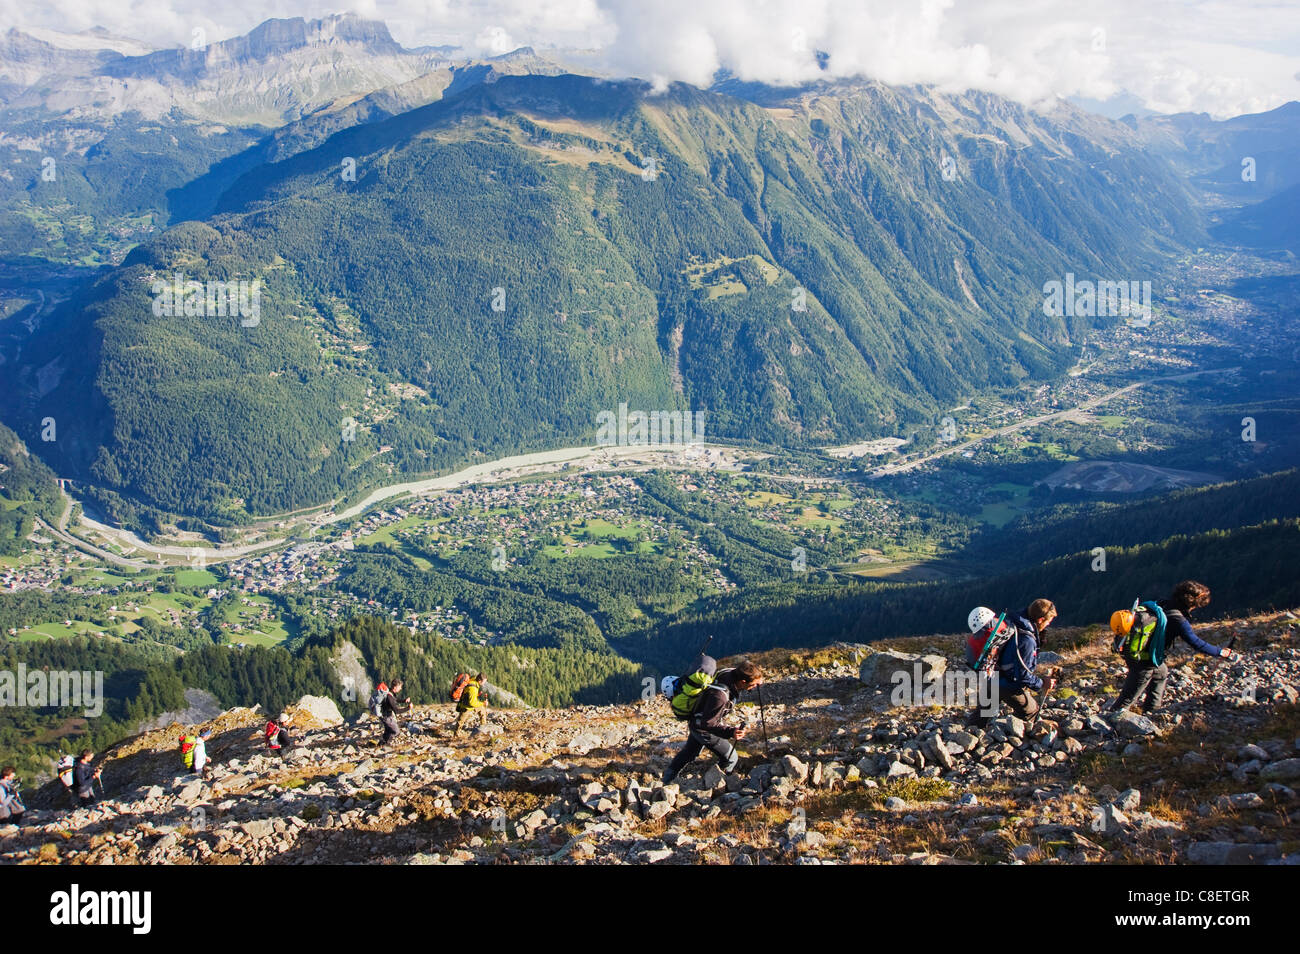 Hikers above Chamonix Valley, Mont Blanc Massif, French Alps, France Stock Photo